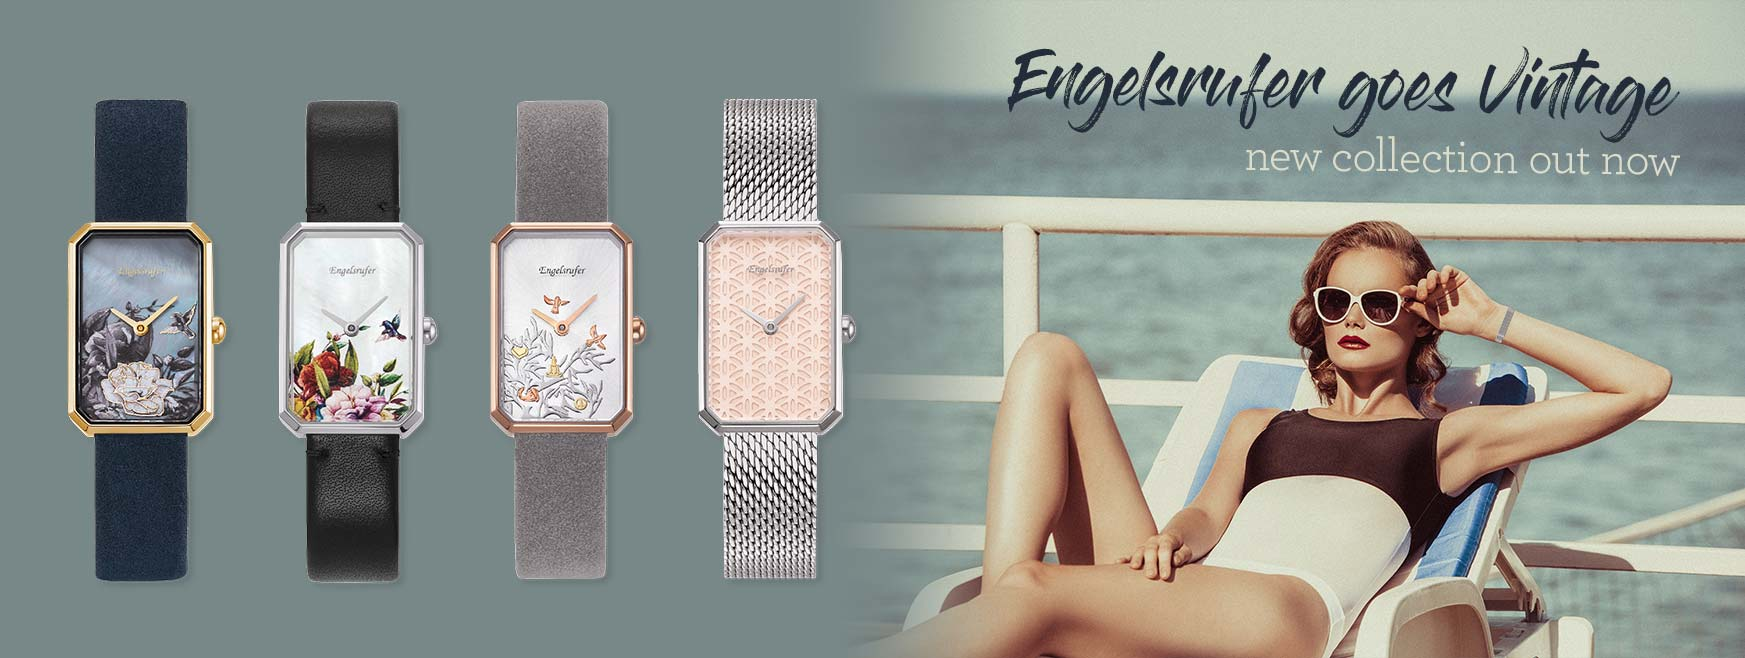 We love Vintage - Our new watches